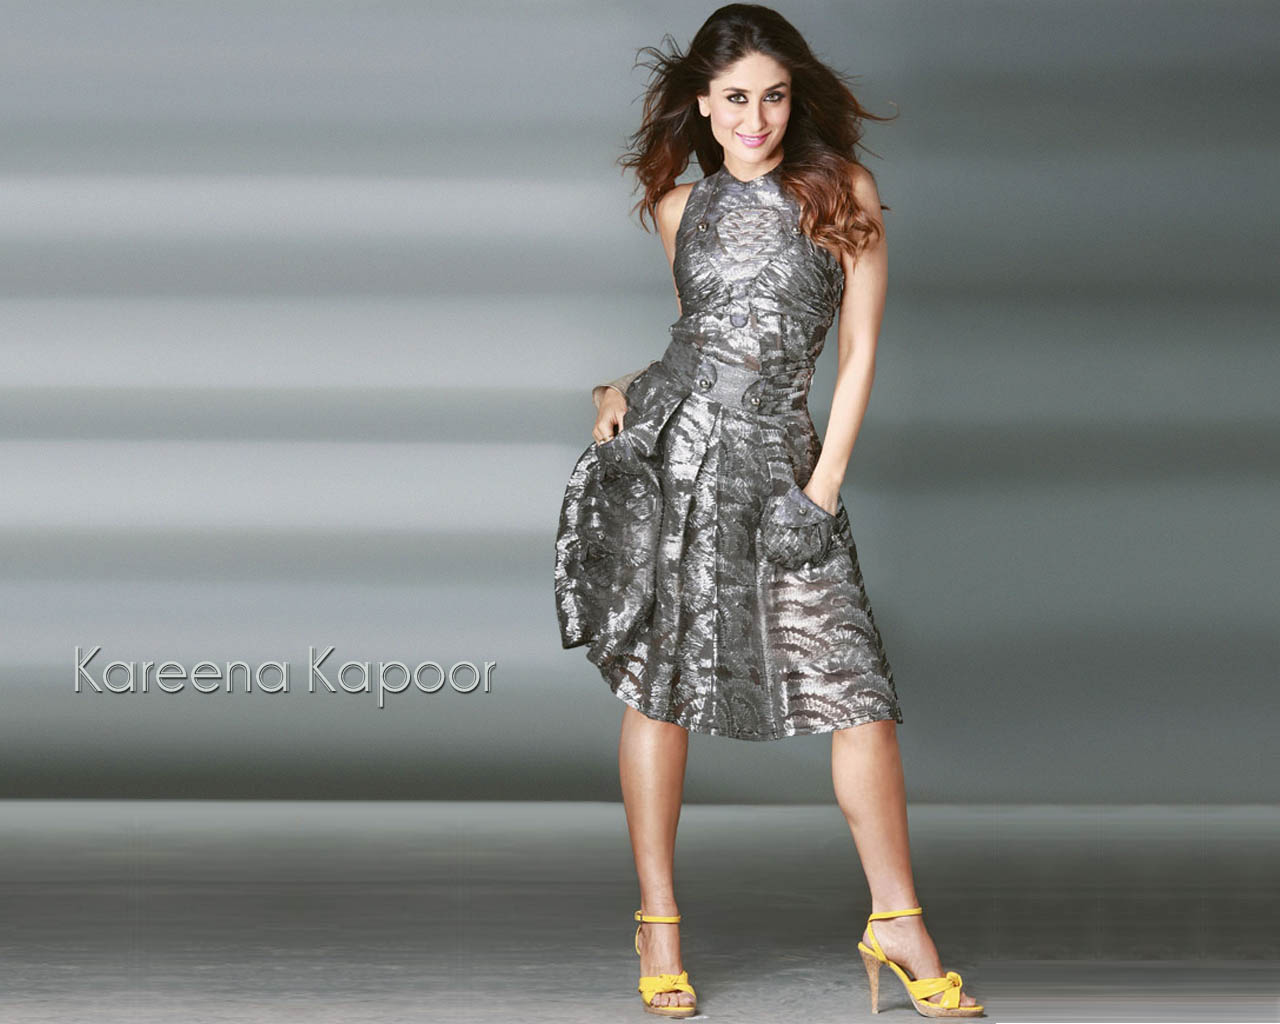 Sexy Wallpapers Kareena Kapoor Without Clothes-7750